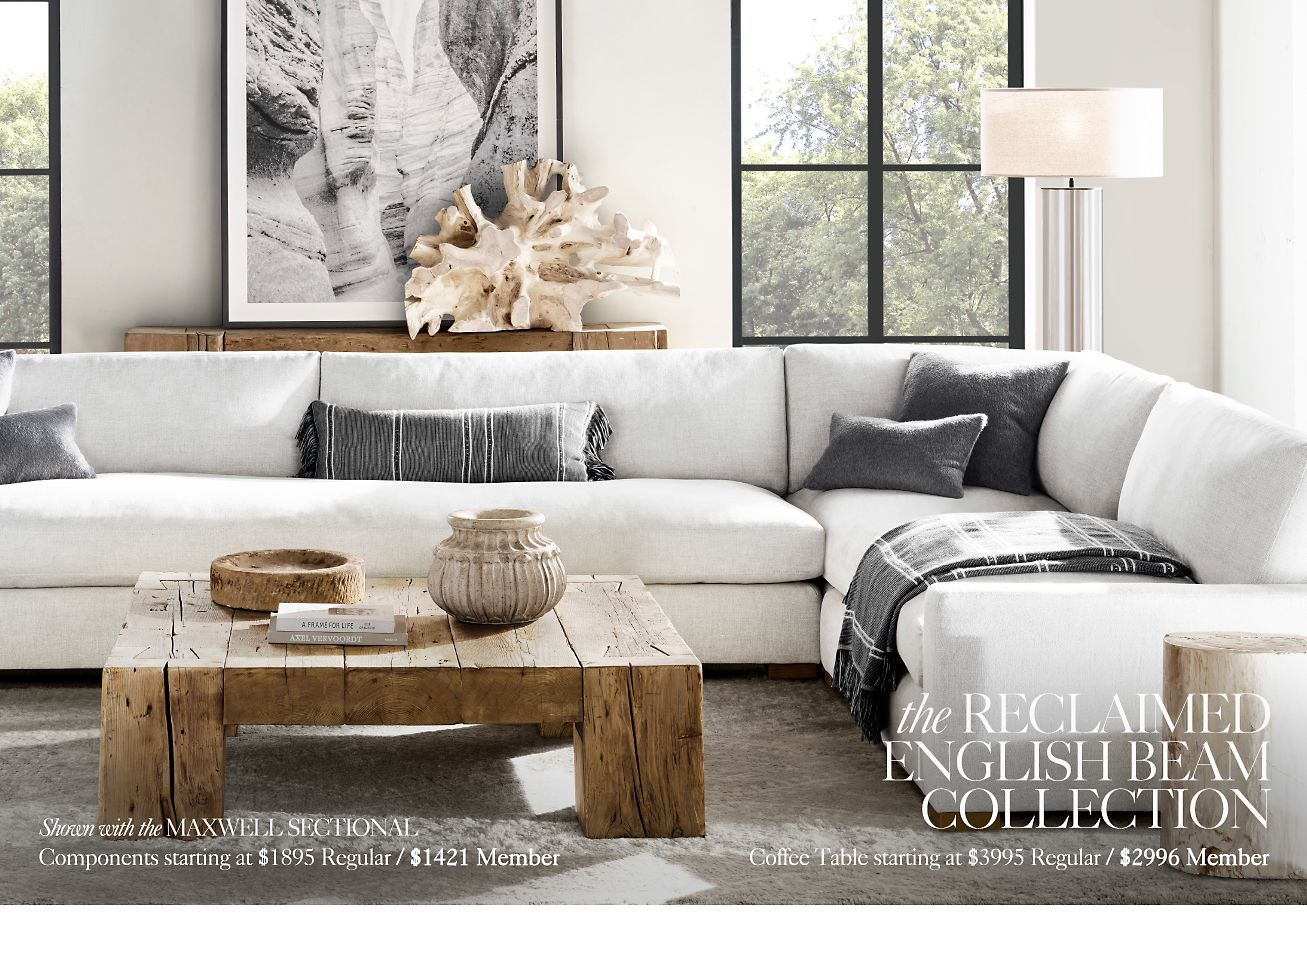 Restoration Hardware The Reclaimed English Beam Collection By Timothy Oulton Milled Living Room Designs Home Apartment Living Room